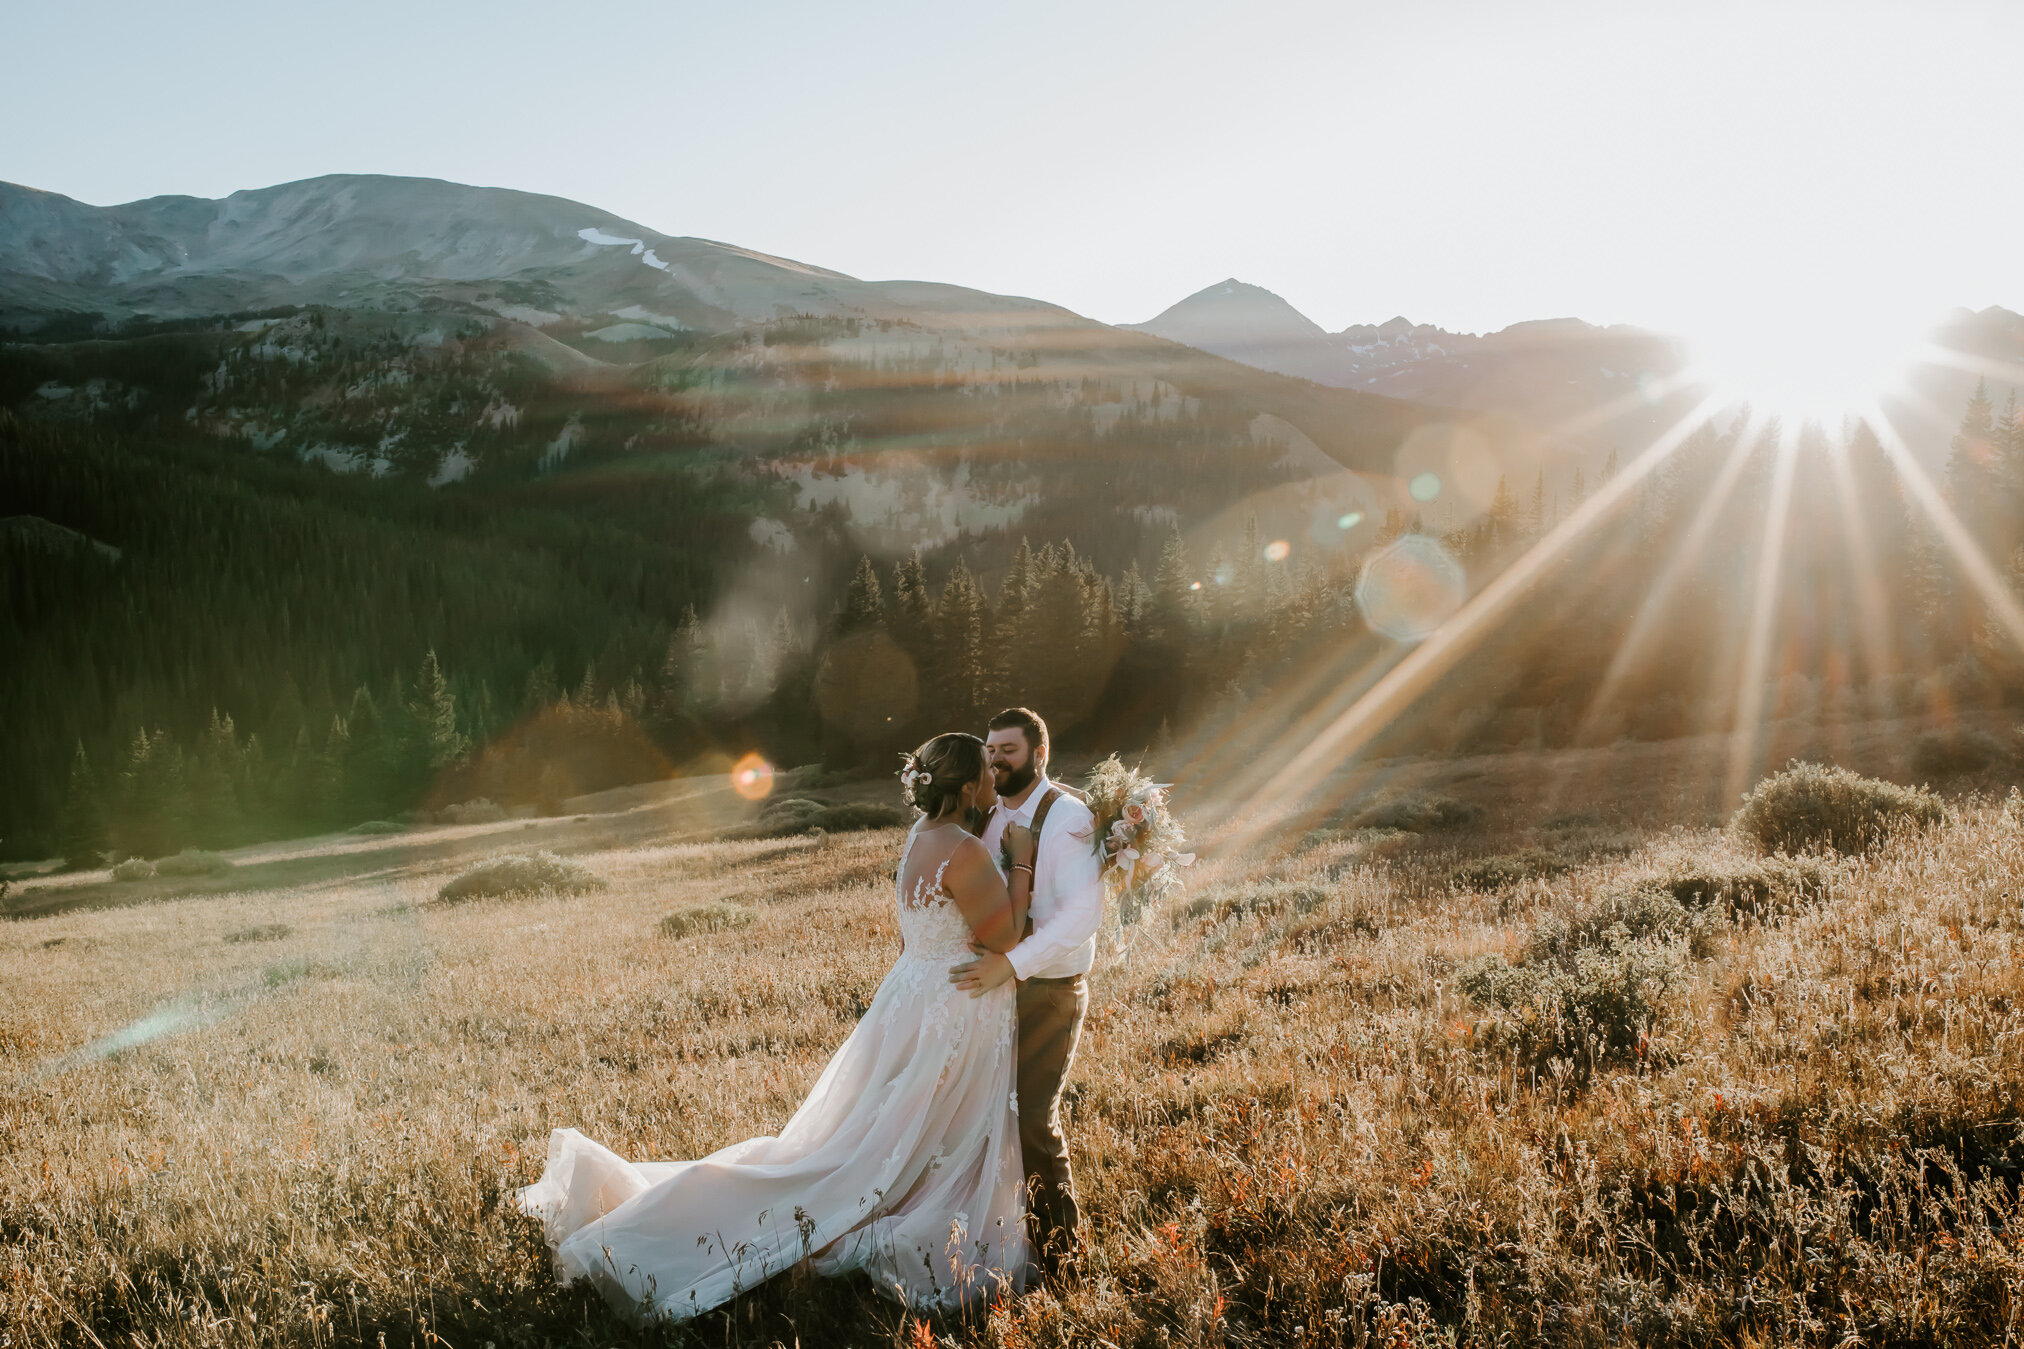 kourtney+kennybreckenridgewedding-13.jpg